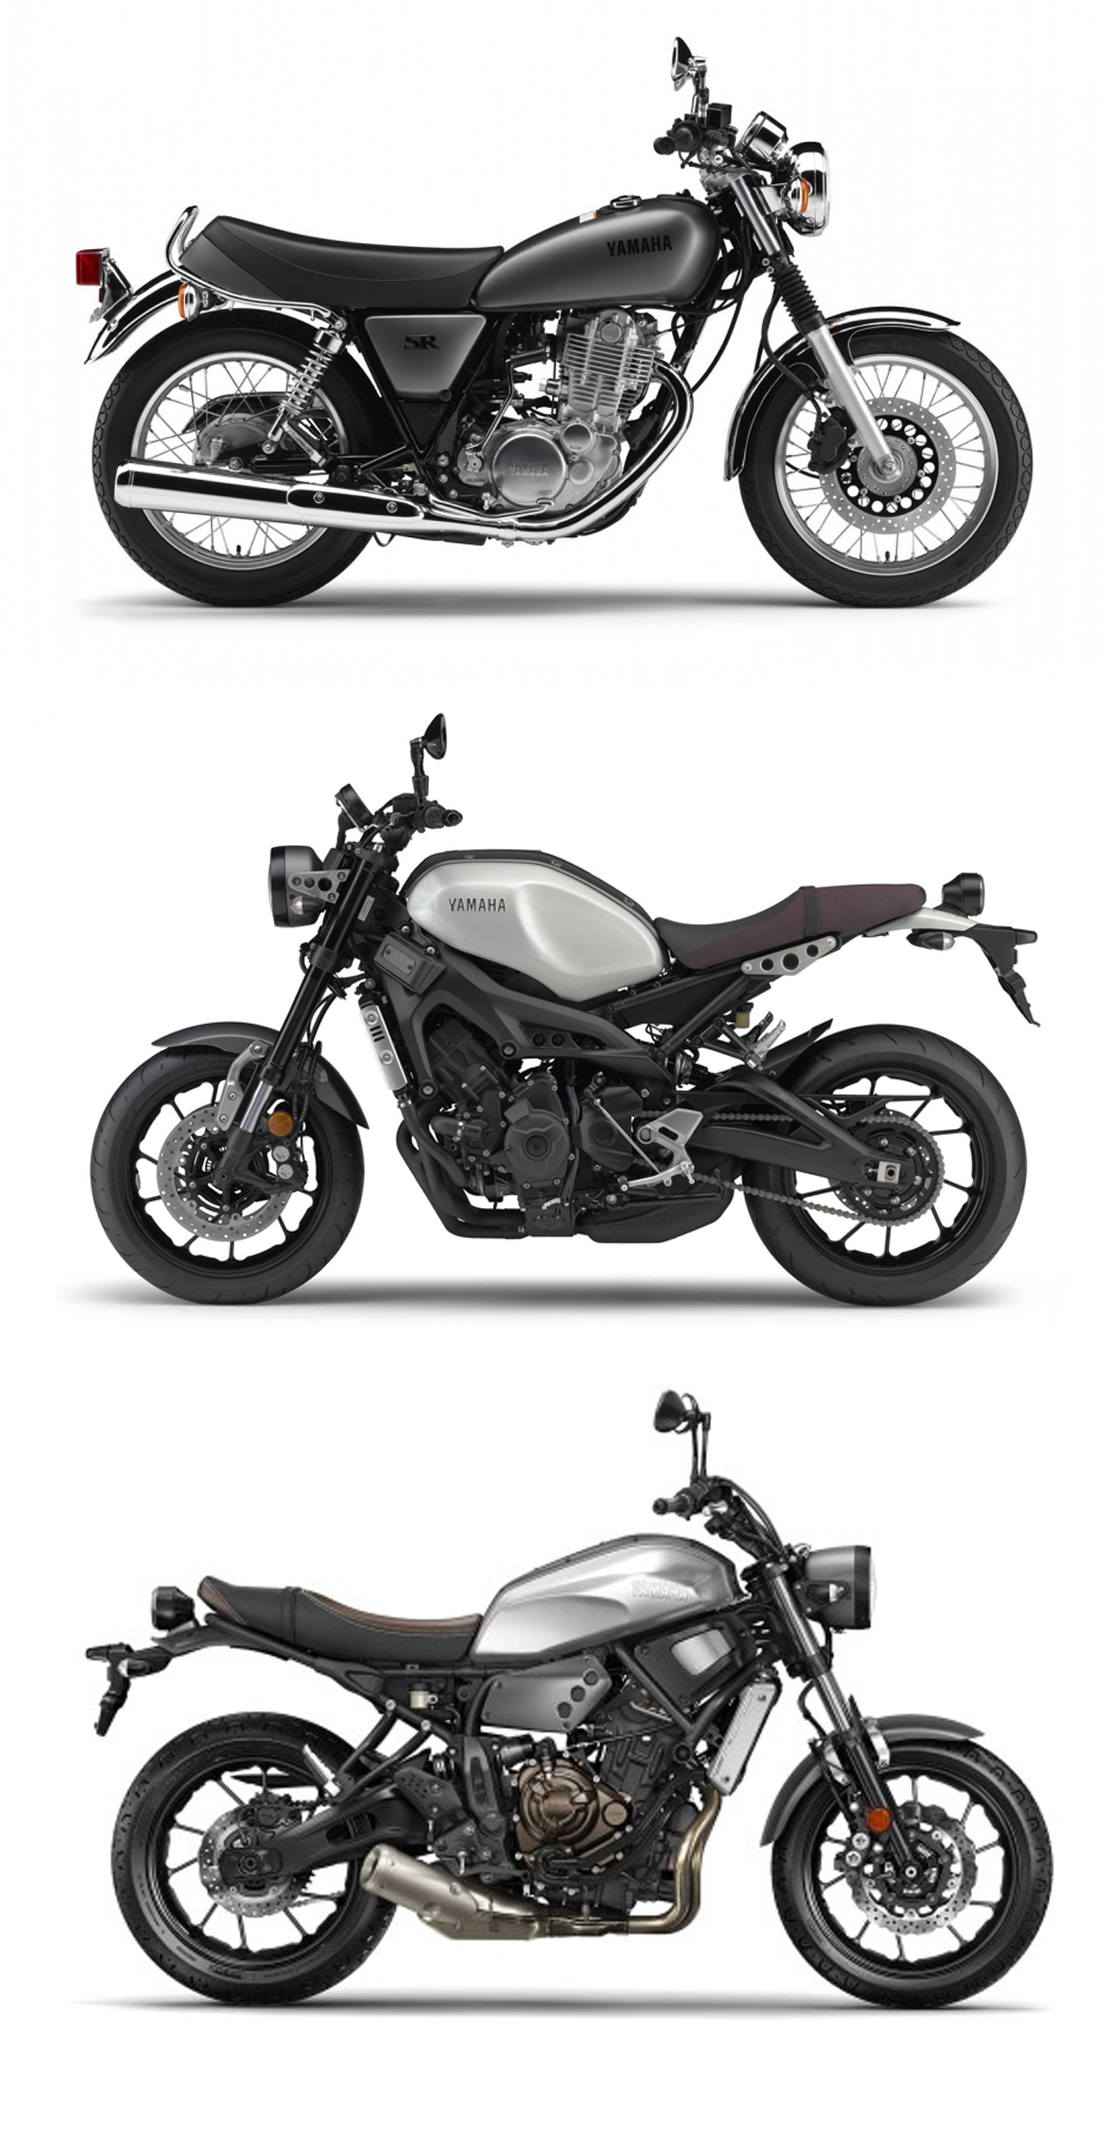 New Yamahas At The House Of Simple Pleasuresdeus Ex Machina